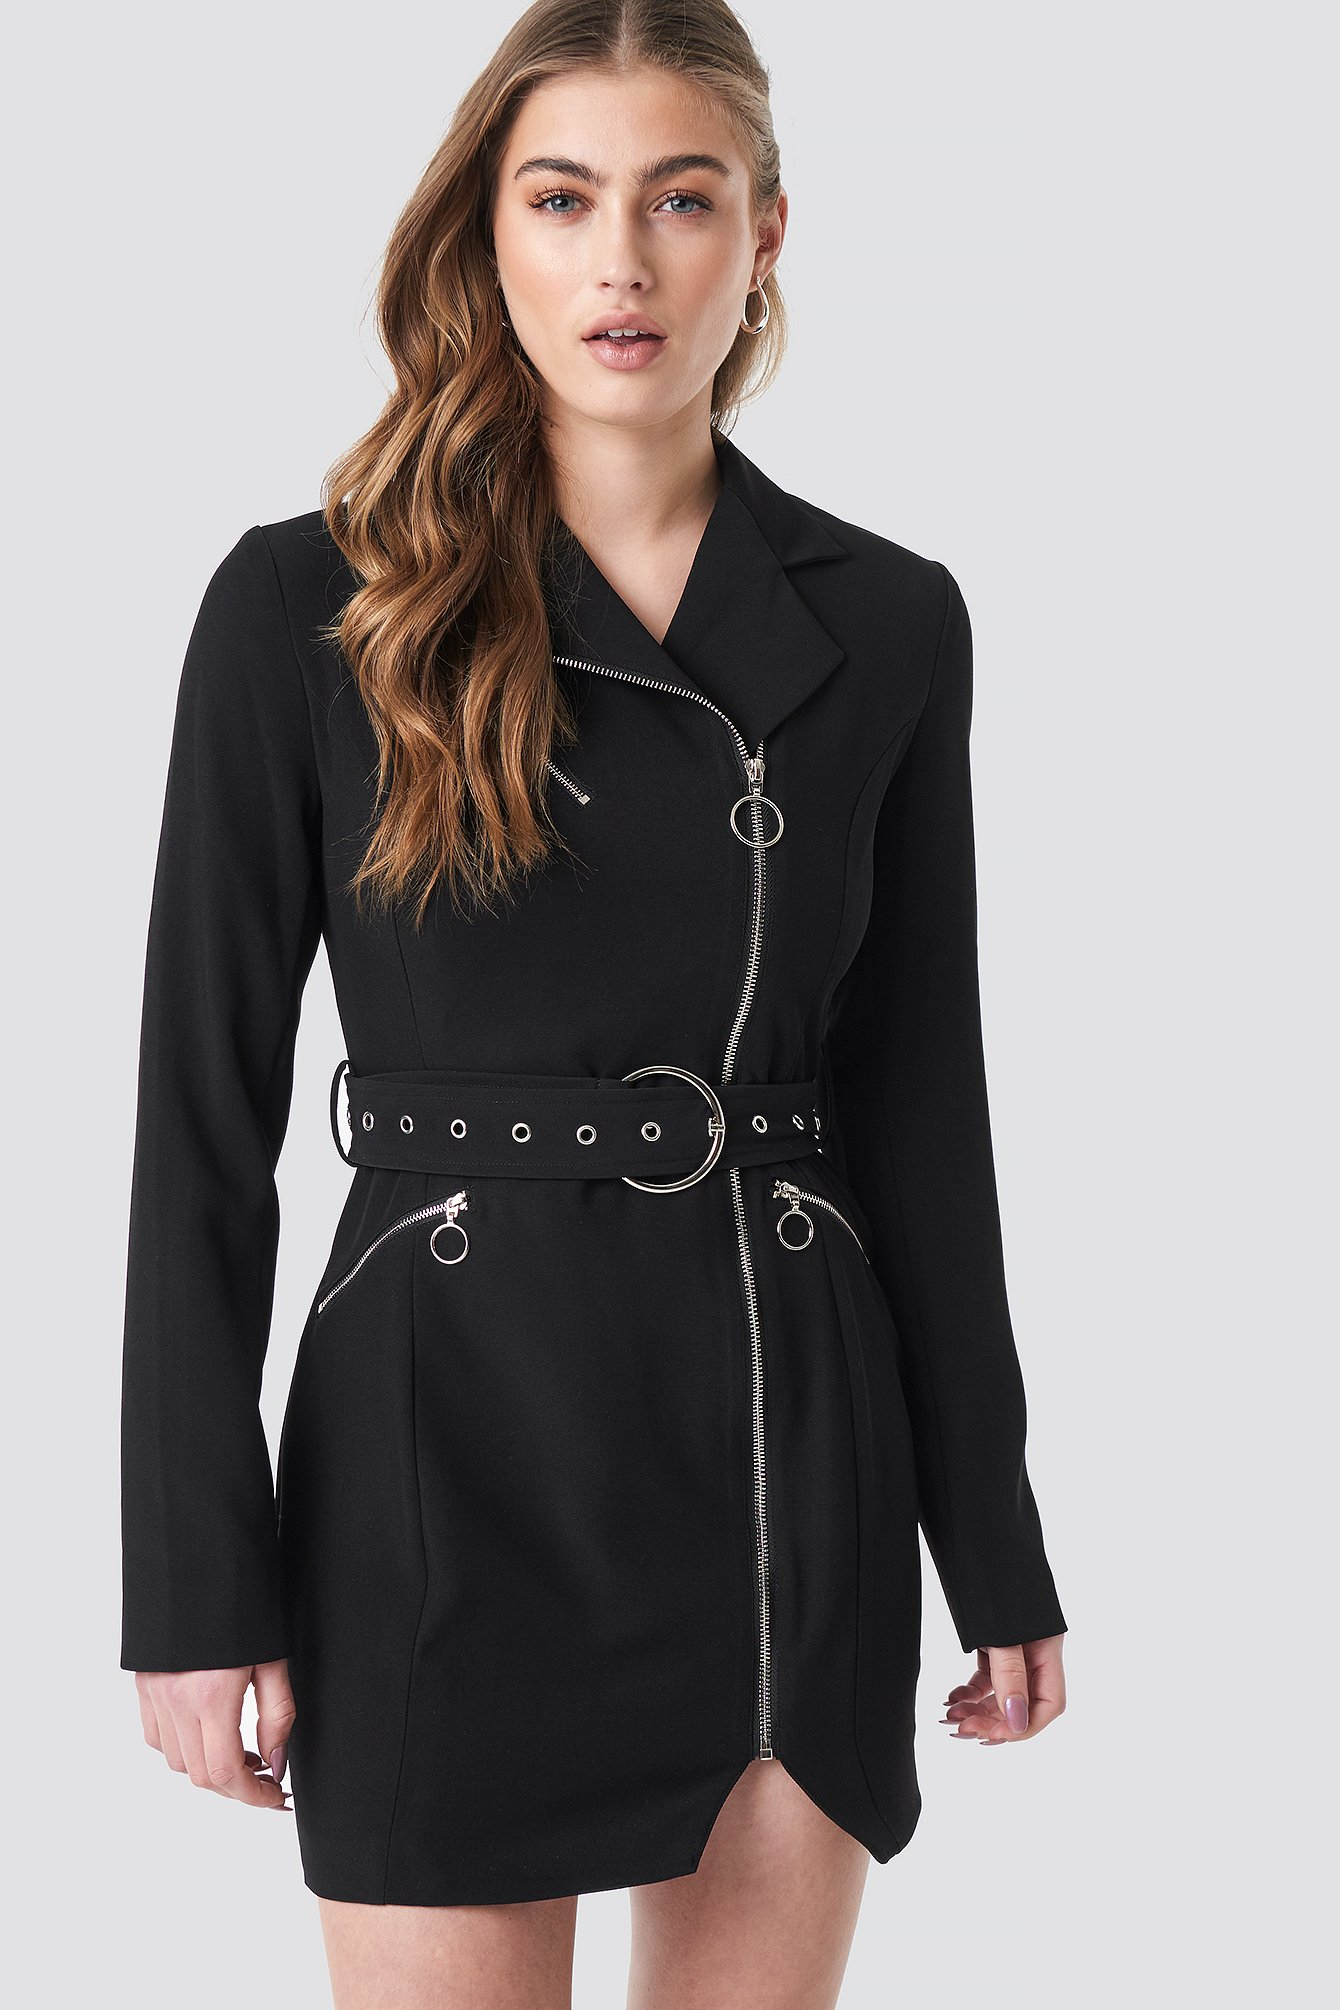 Donnaromina x NA-KD Belted Zip Detail Blazer Dress - Black